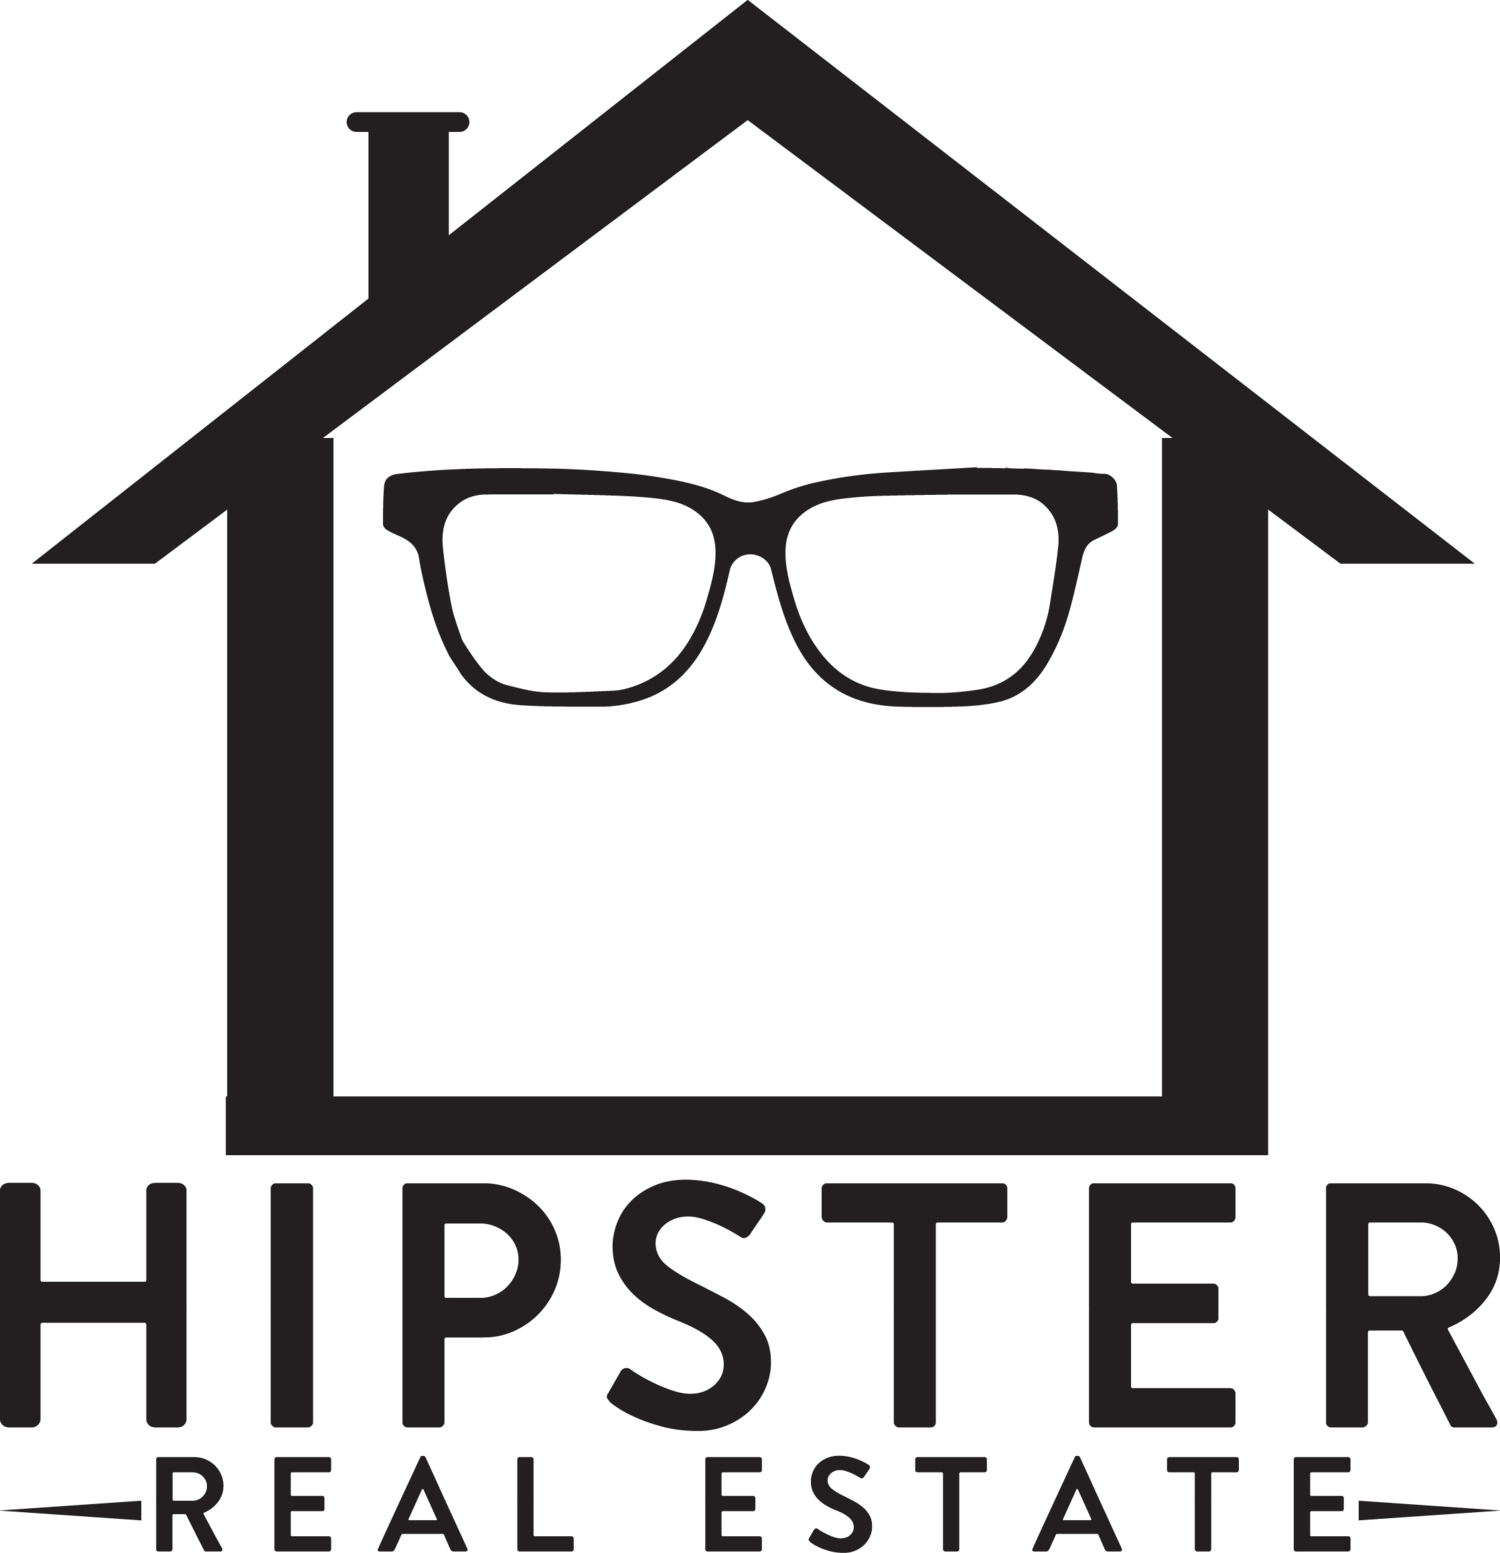 Hipster Real Estate